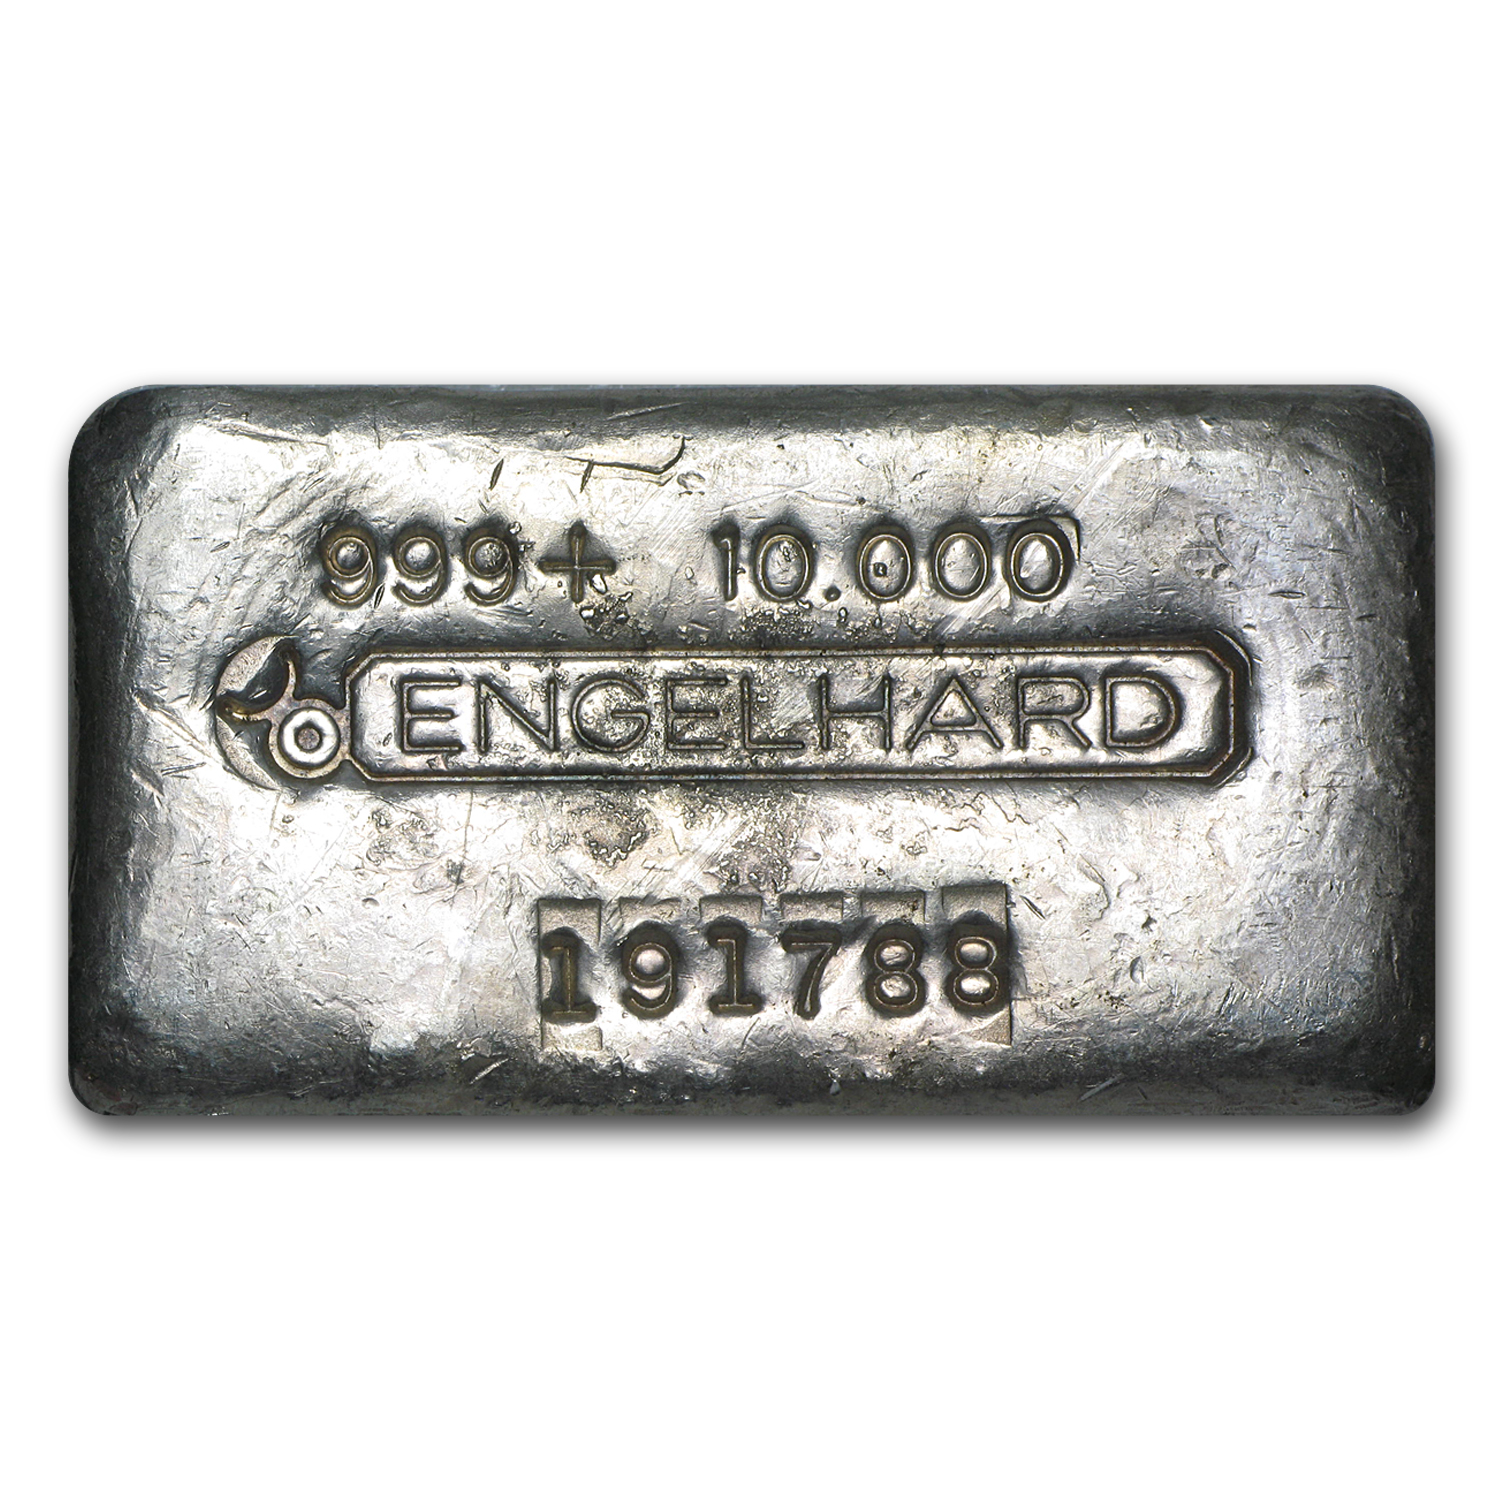 10 oz Silver Bar - Engelhard (Wide/Poured/Bull Logo)